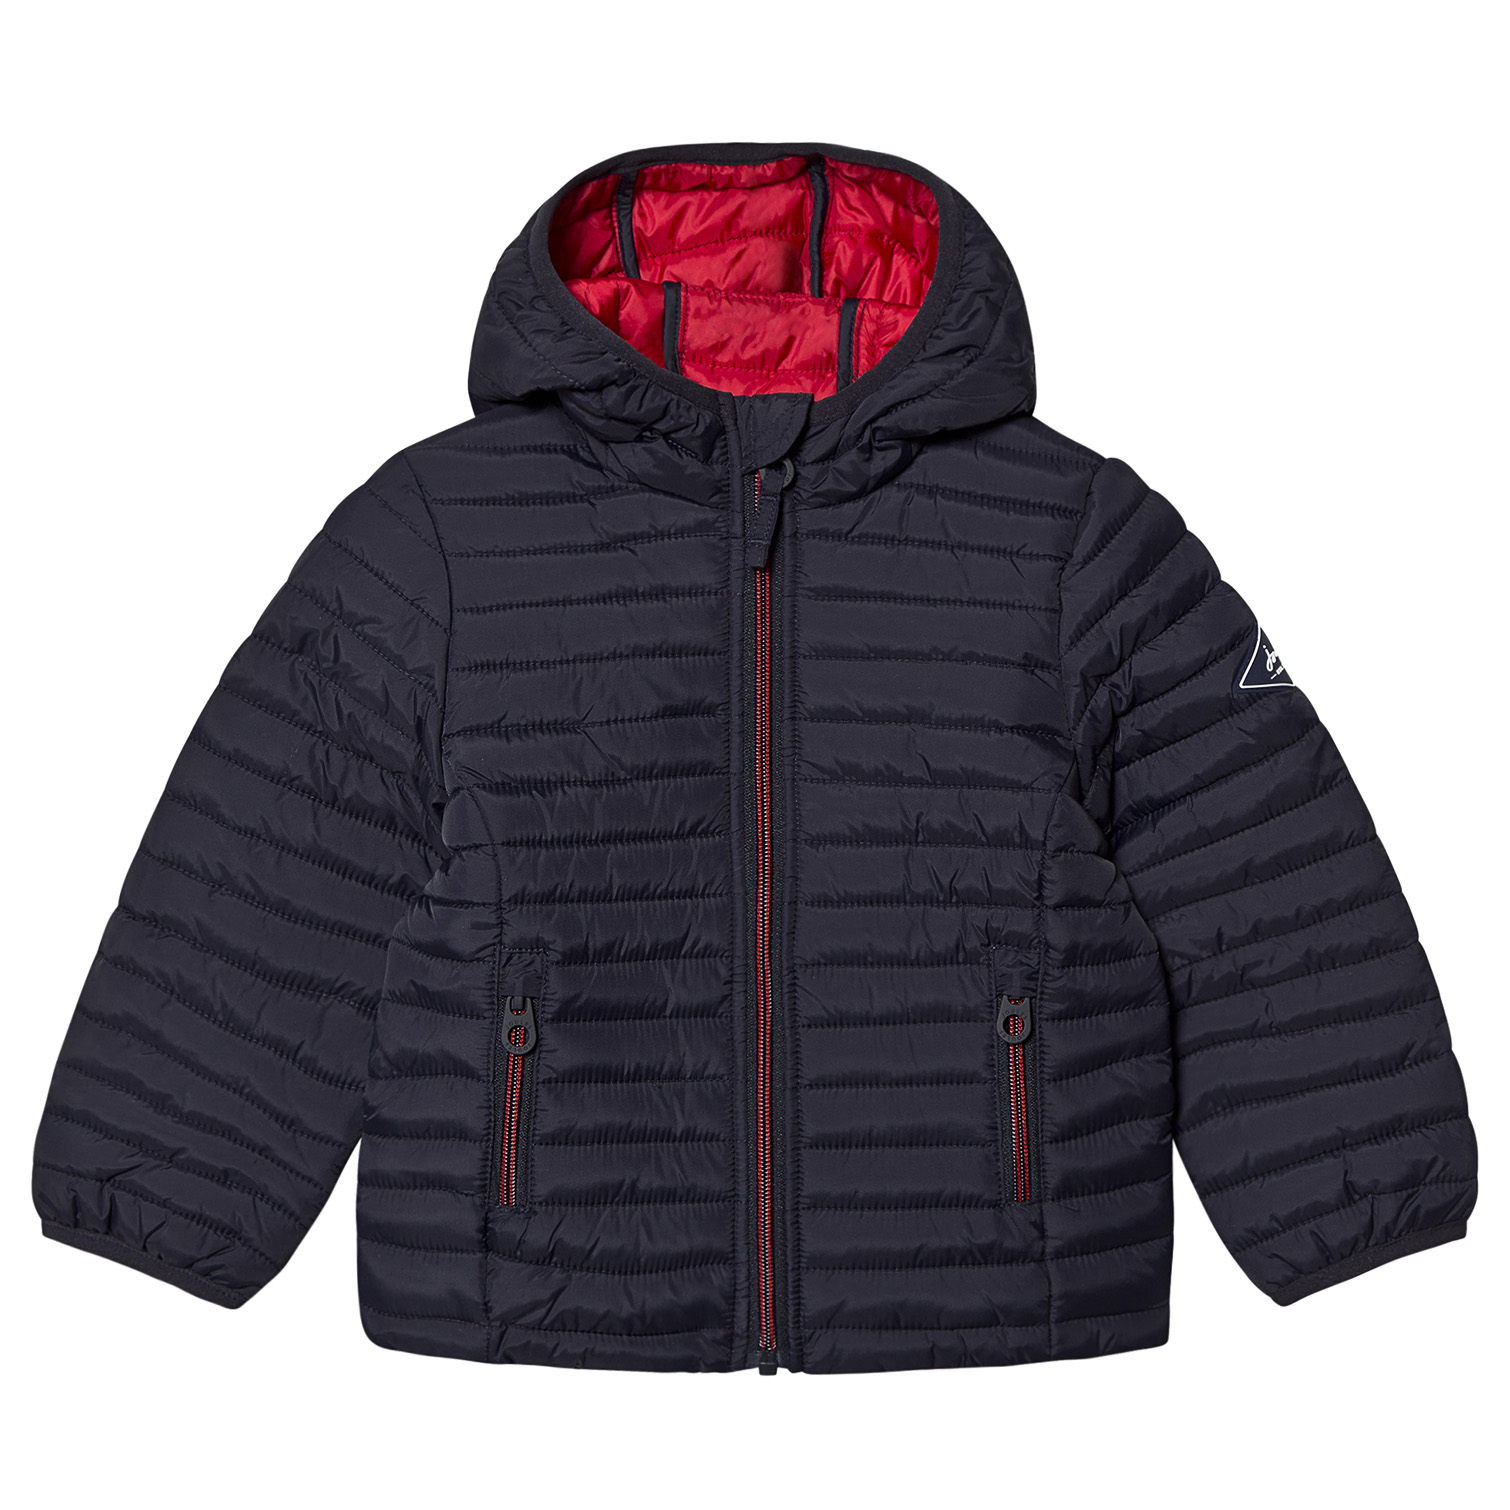 Joules Navy Packaway Cairn Padded Jacket, from £37, Alex and Alexa